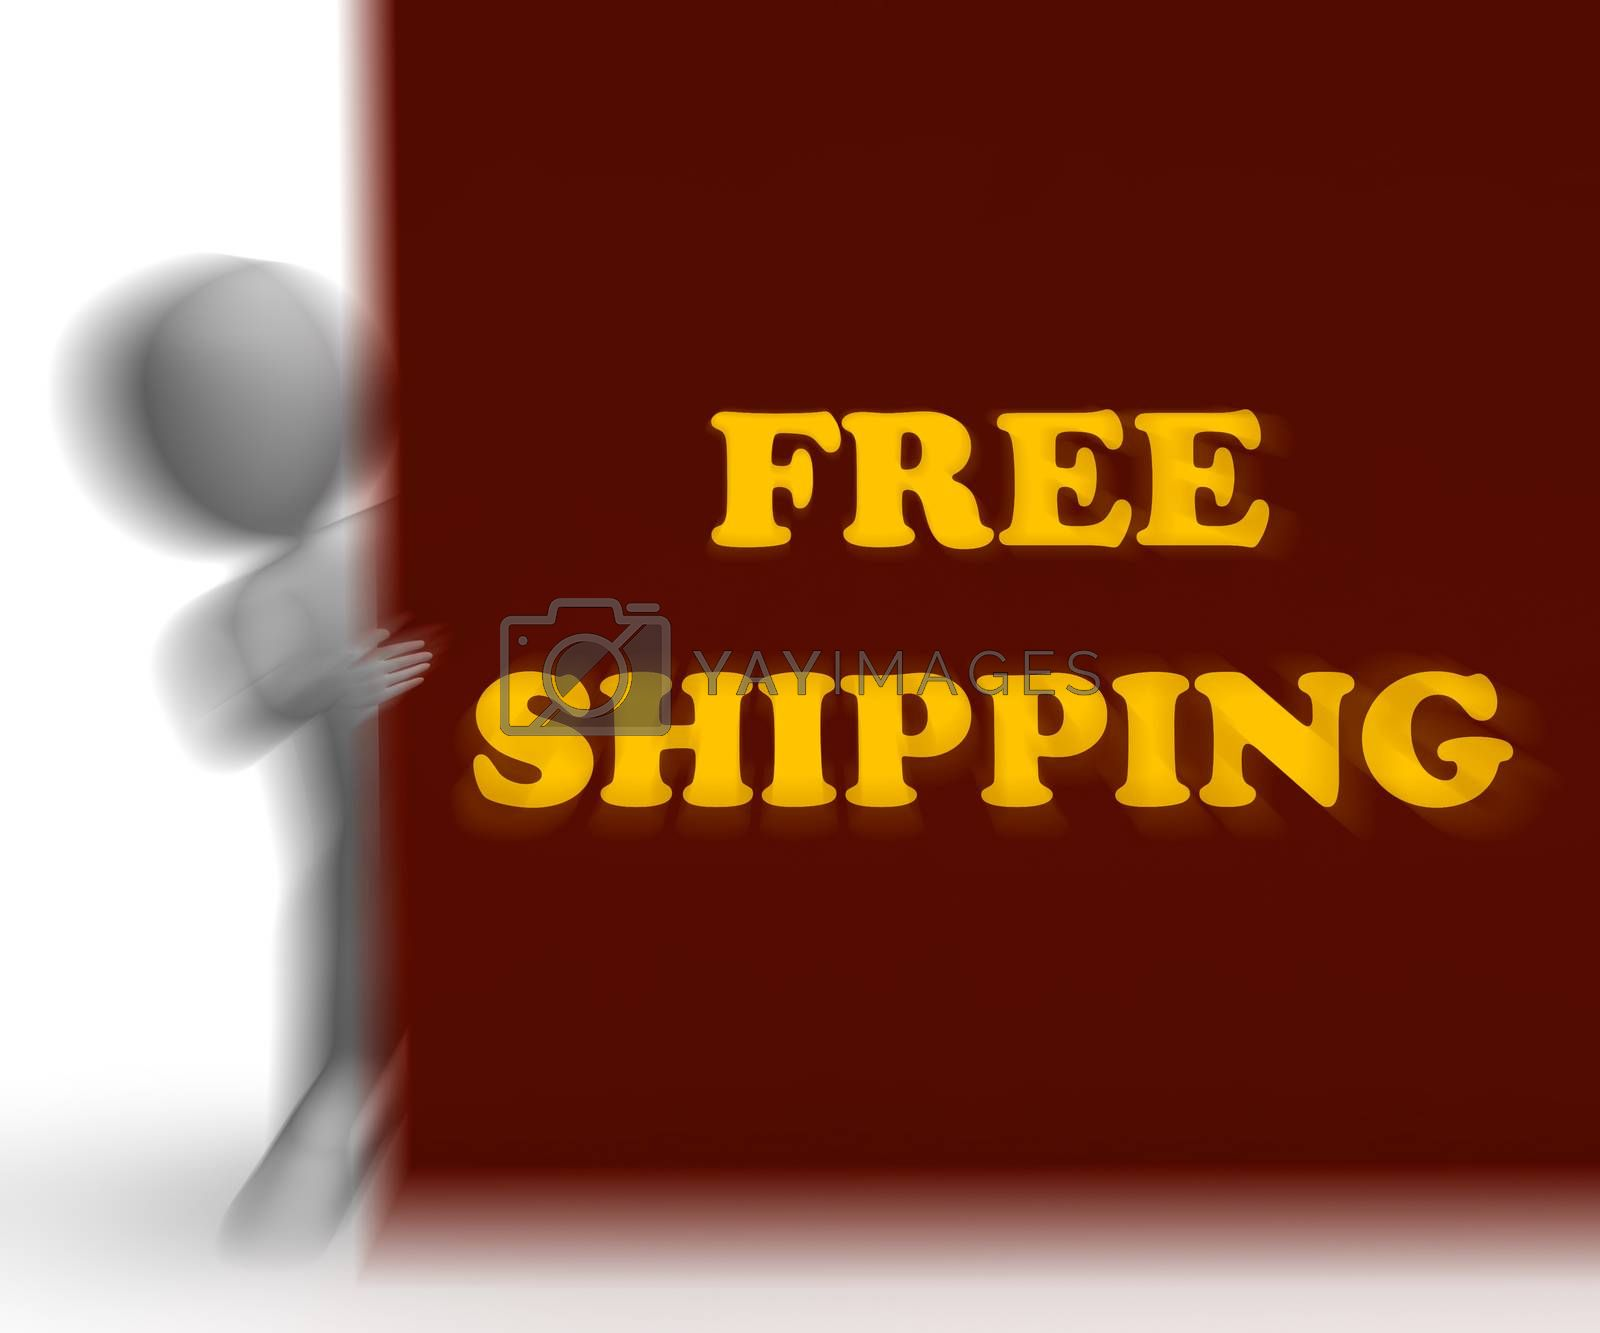 Free Shipping Placard Means Shipping Charges Included by stuartmiles